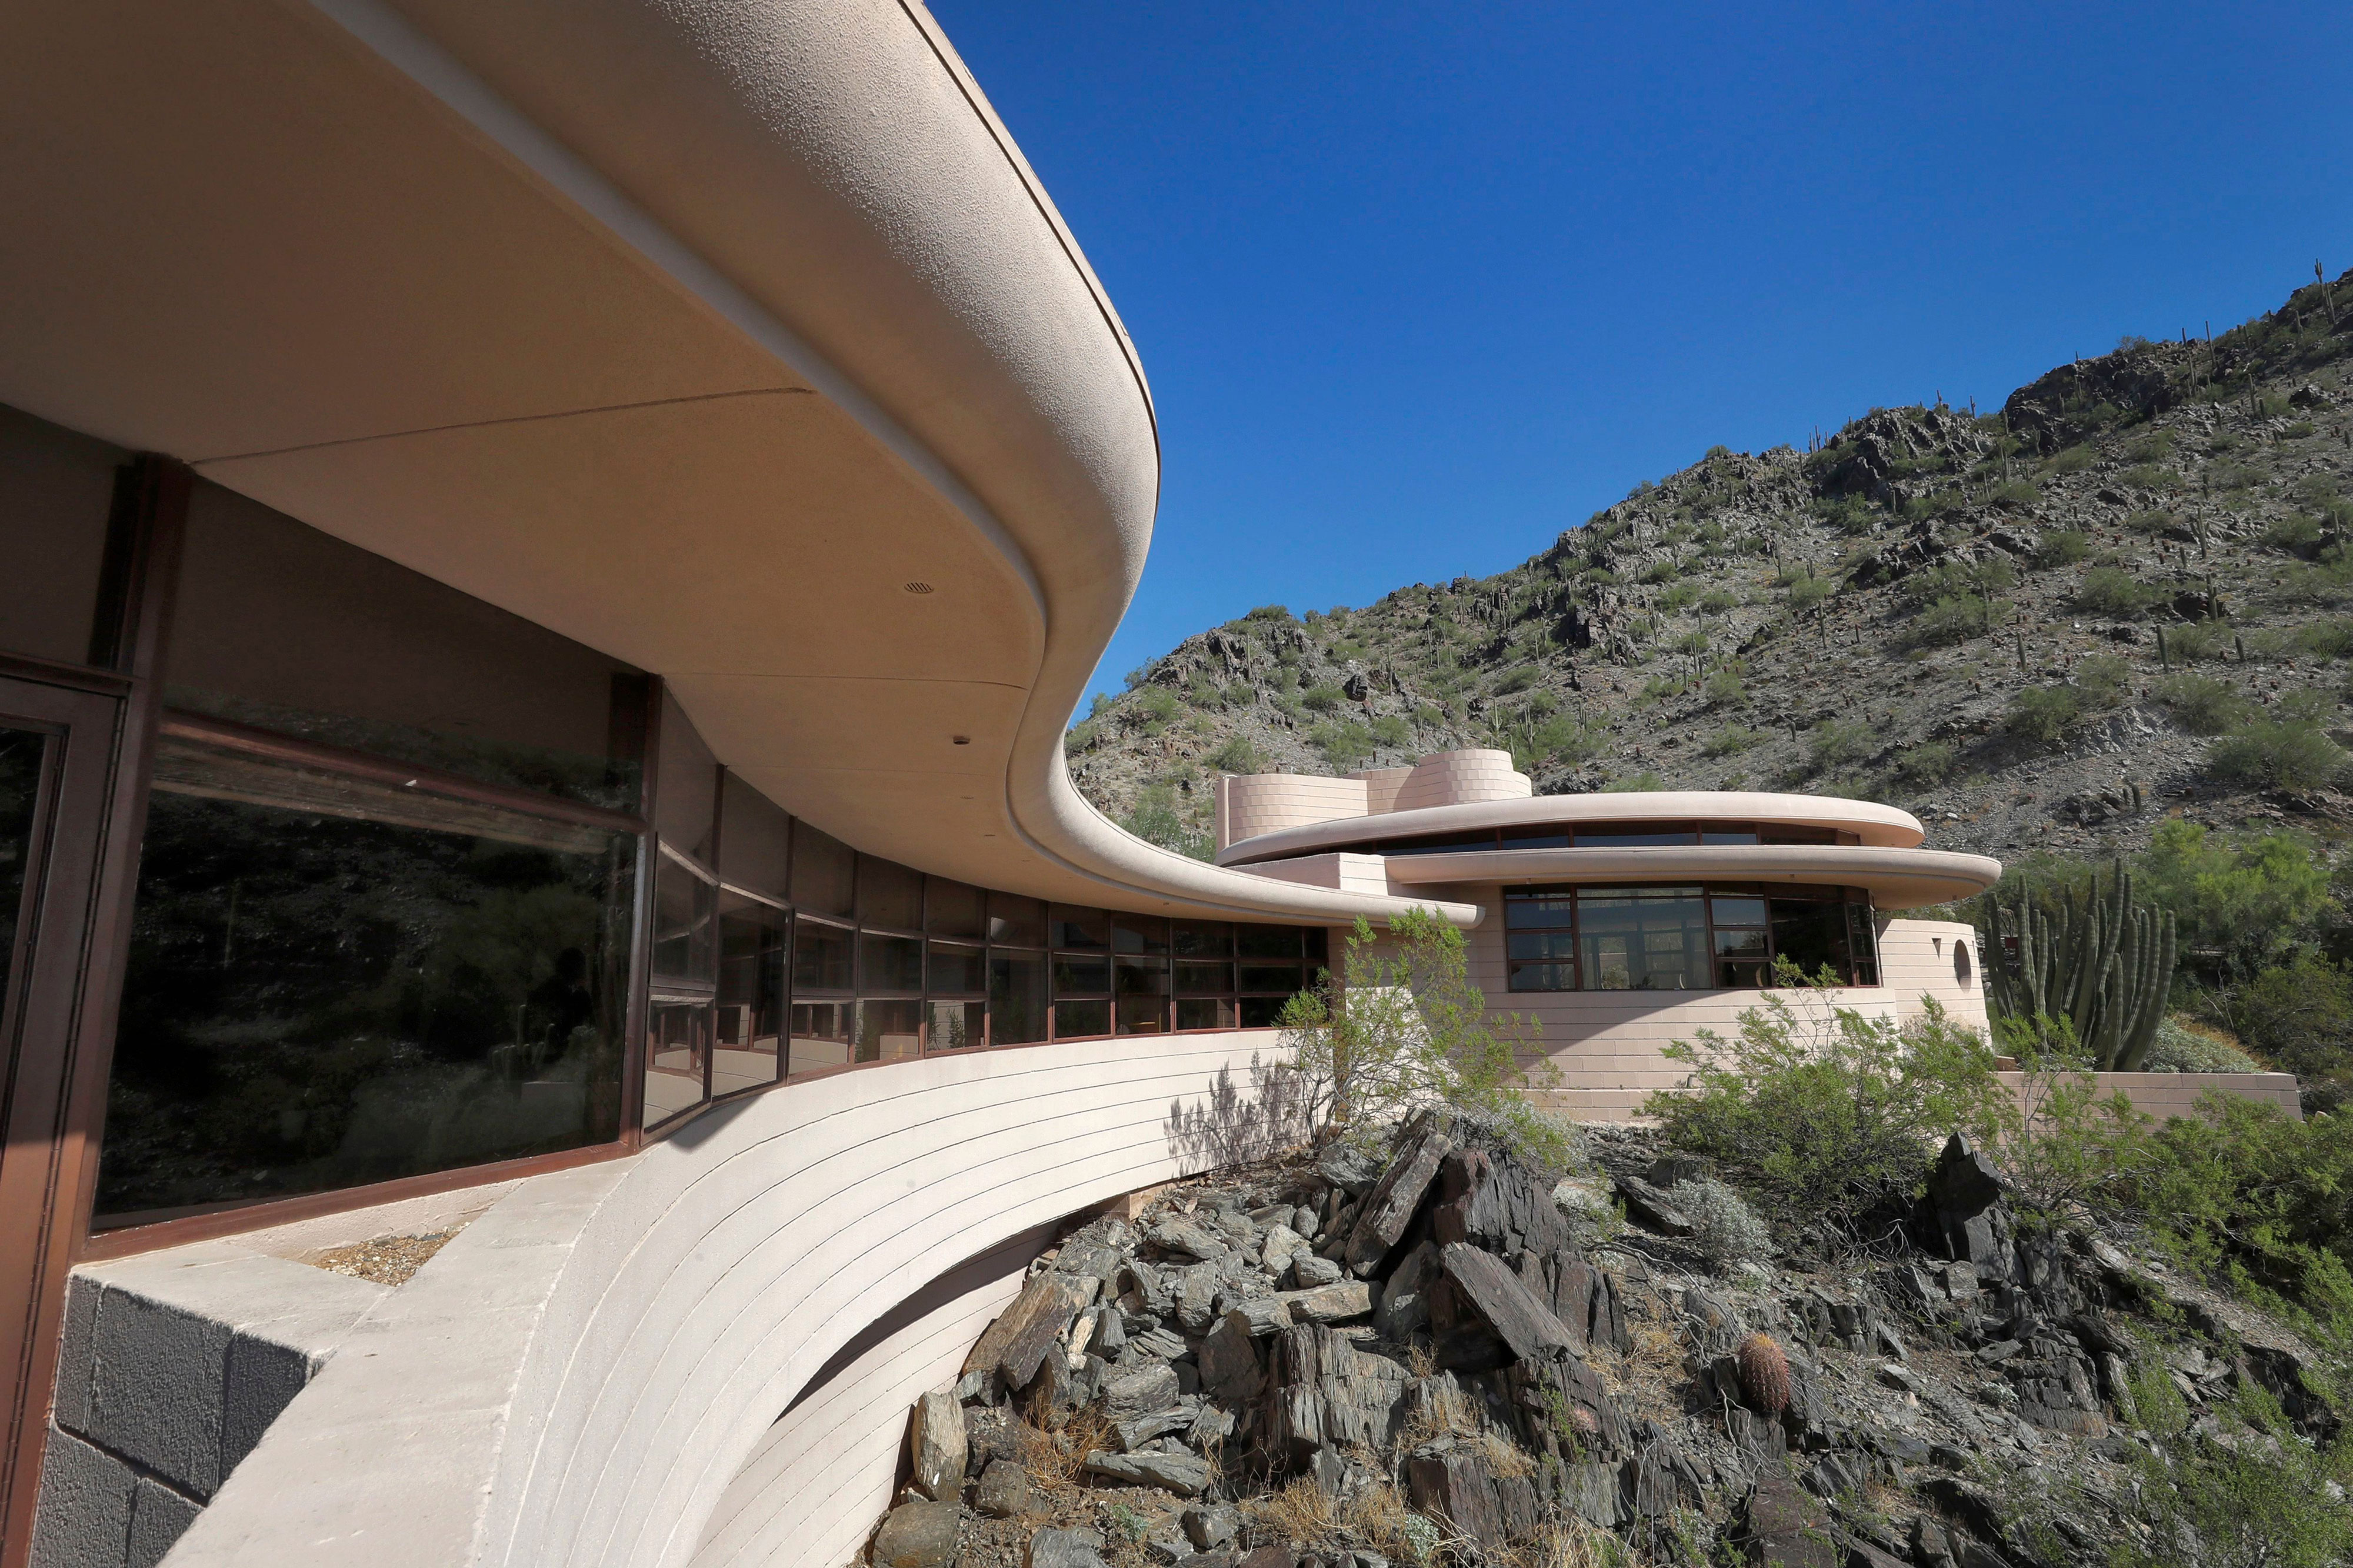 Frank Lloyd Wright's Norman Lykes house in Phoenix, Arizona, which just went back on the market for $8M. The exterior shows a swooping curved patio towards a circular room.